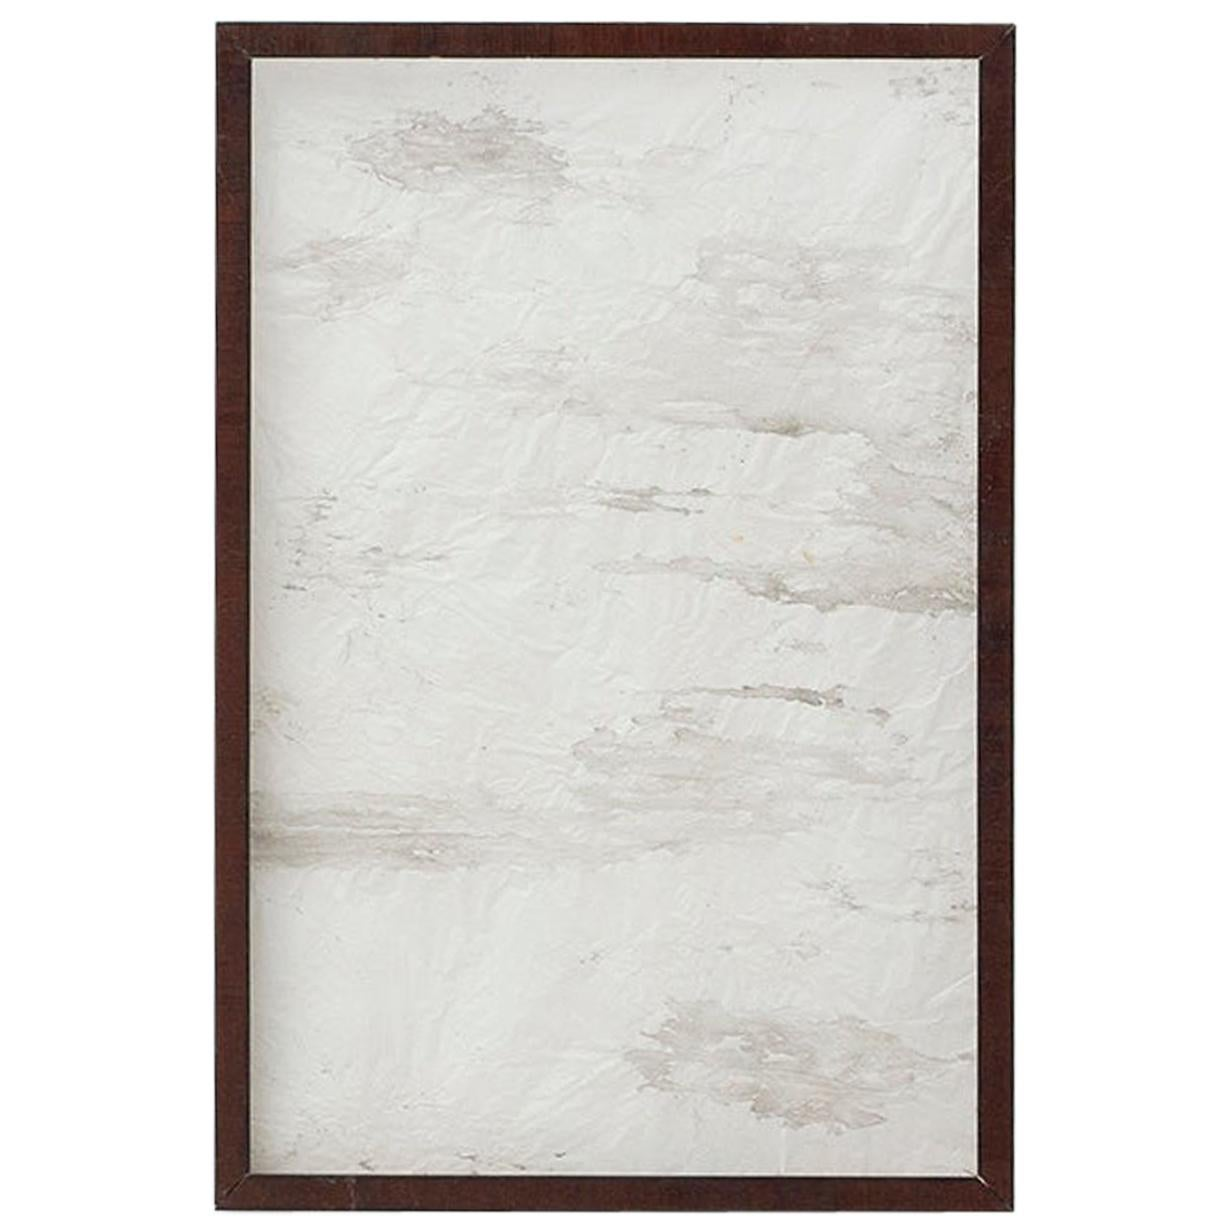 Sandro Contemporary Painting in Translucent Paper